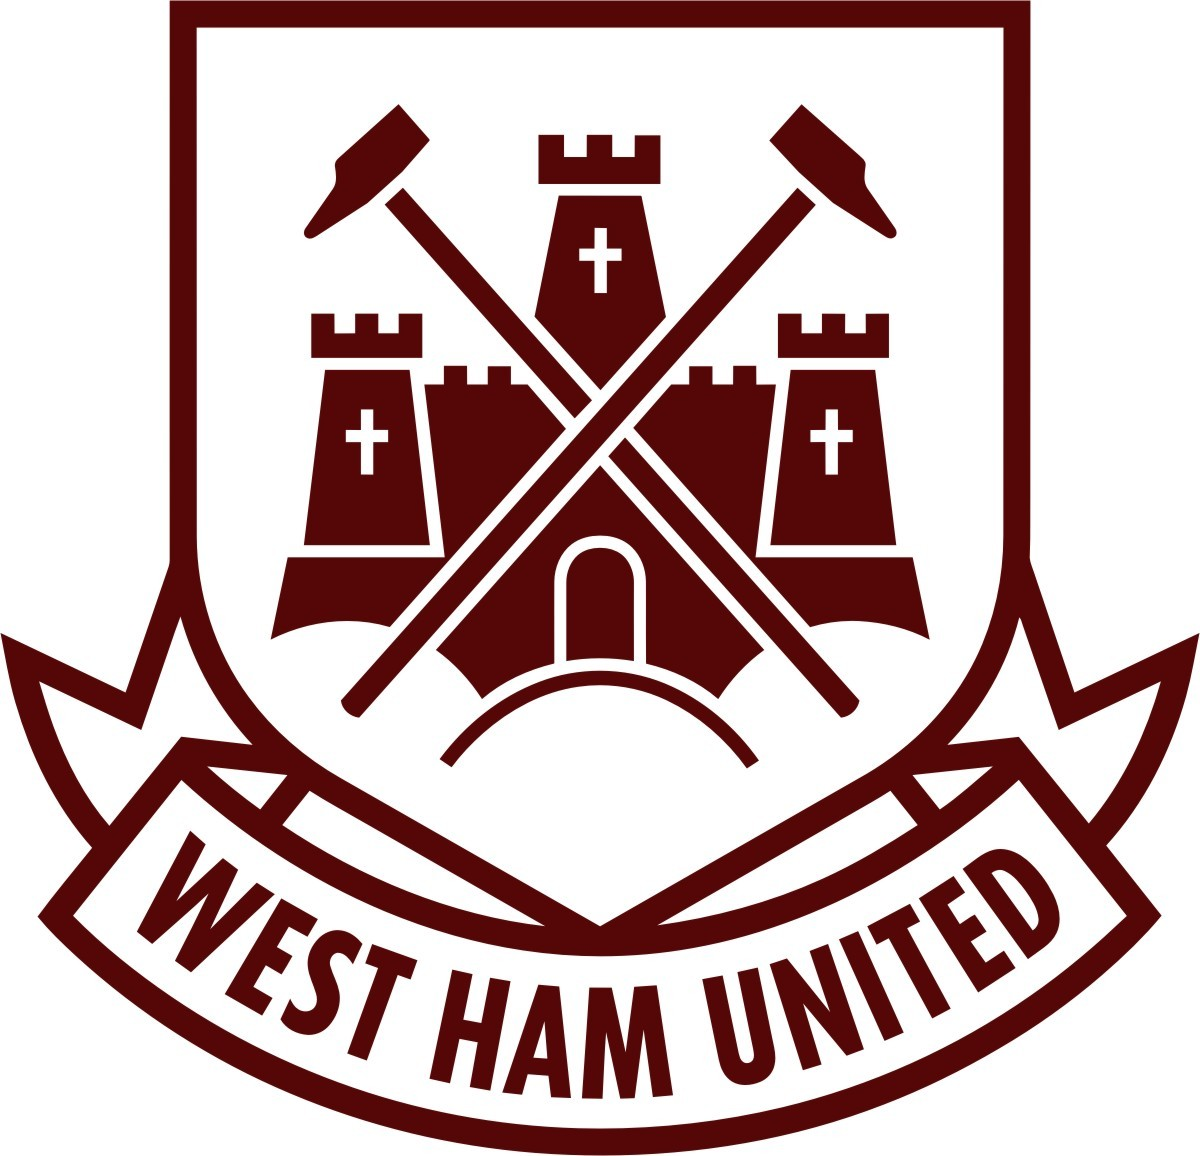 AS IT WAS, WHEN IT WAS (WEST HAM – YOU TUBE) | true faith | The alternative view